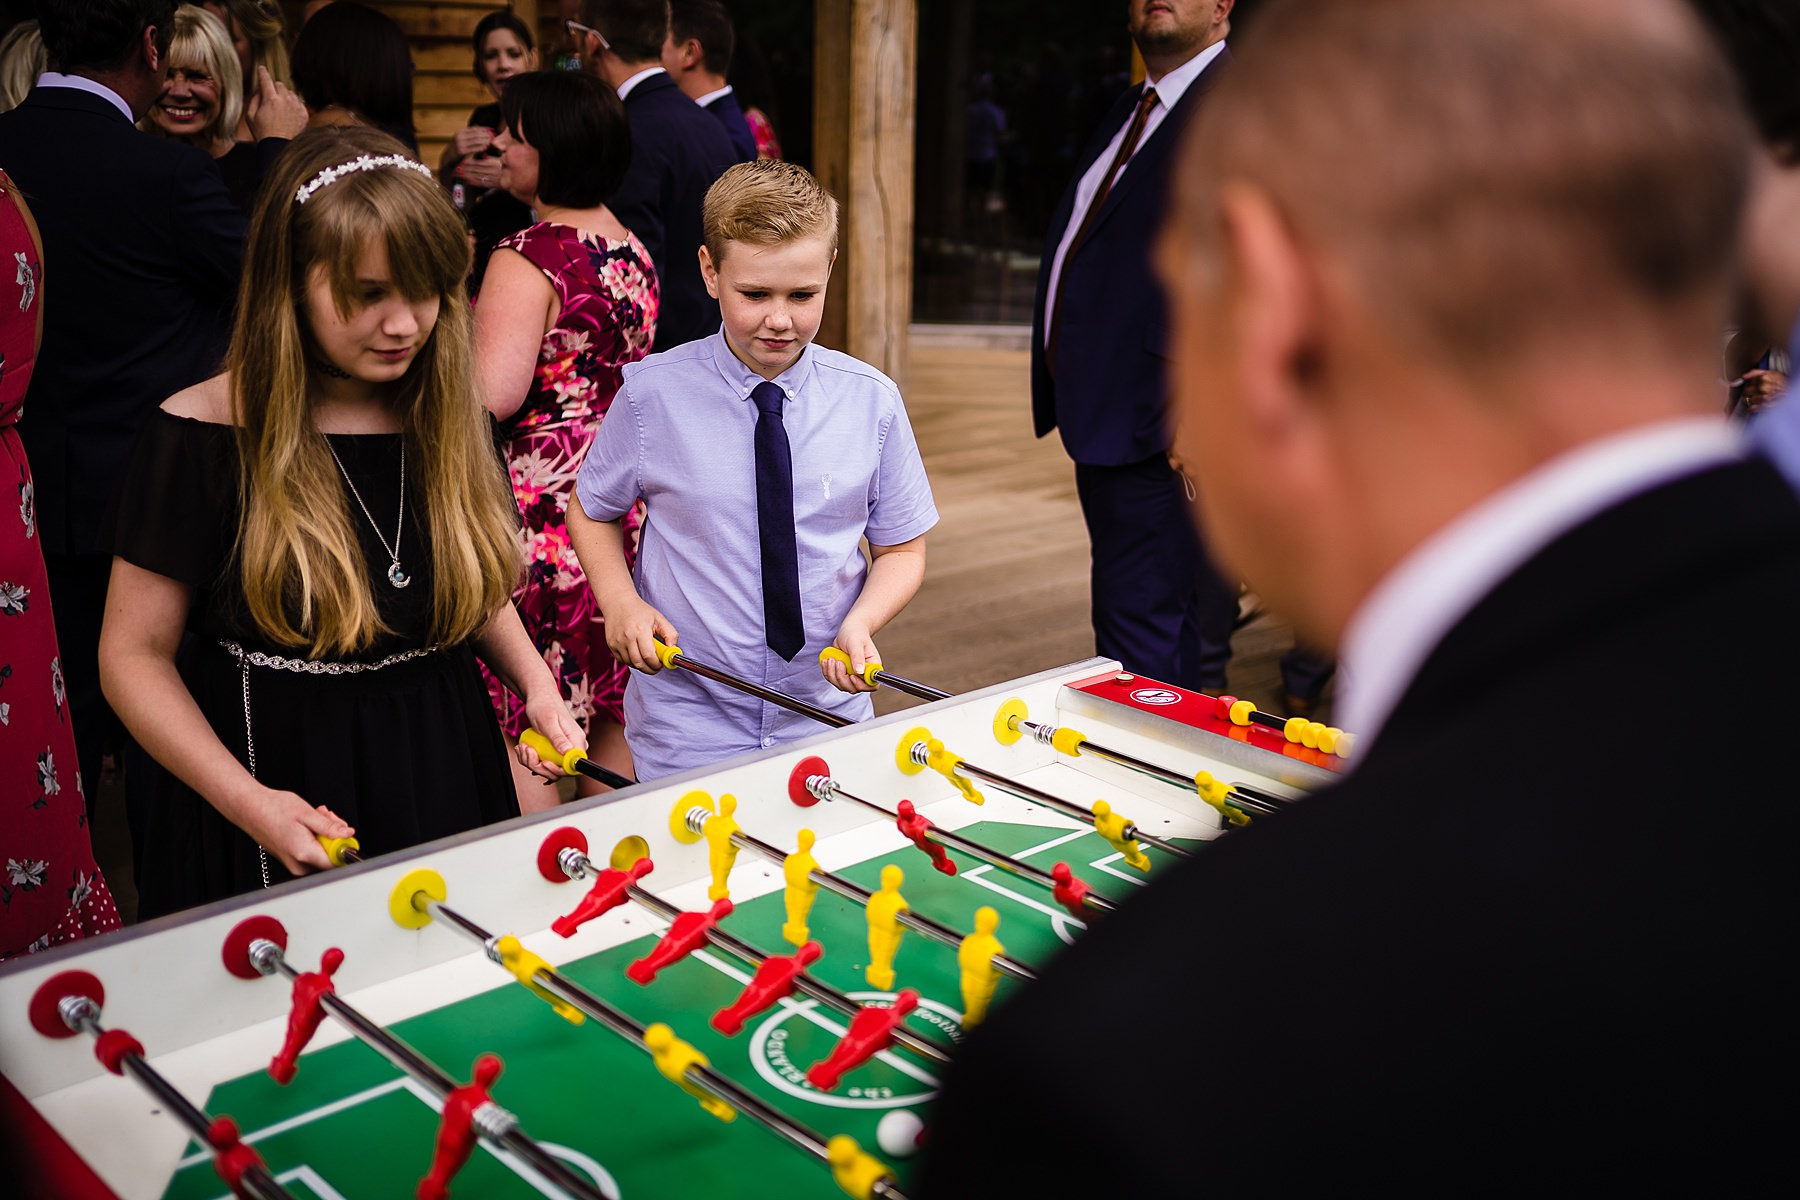 guests playing games